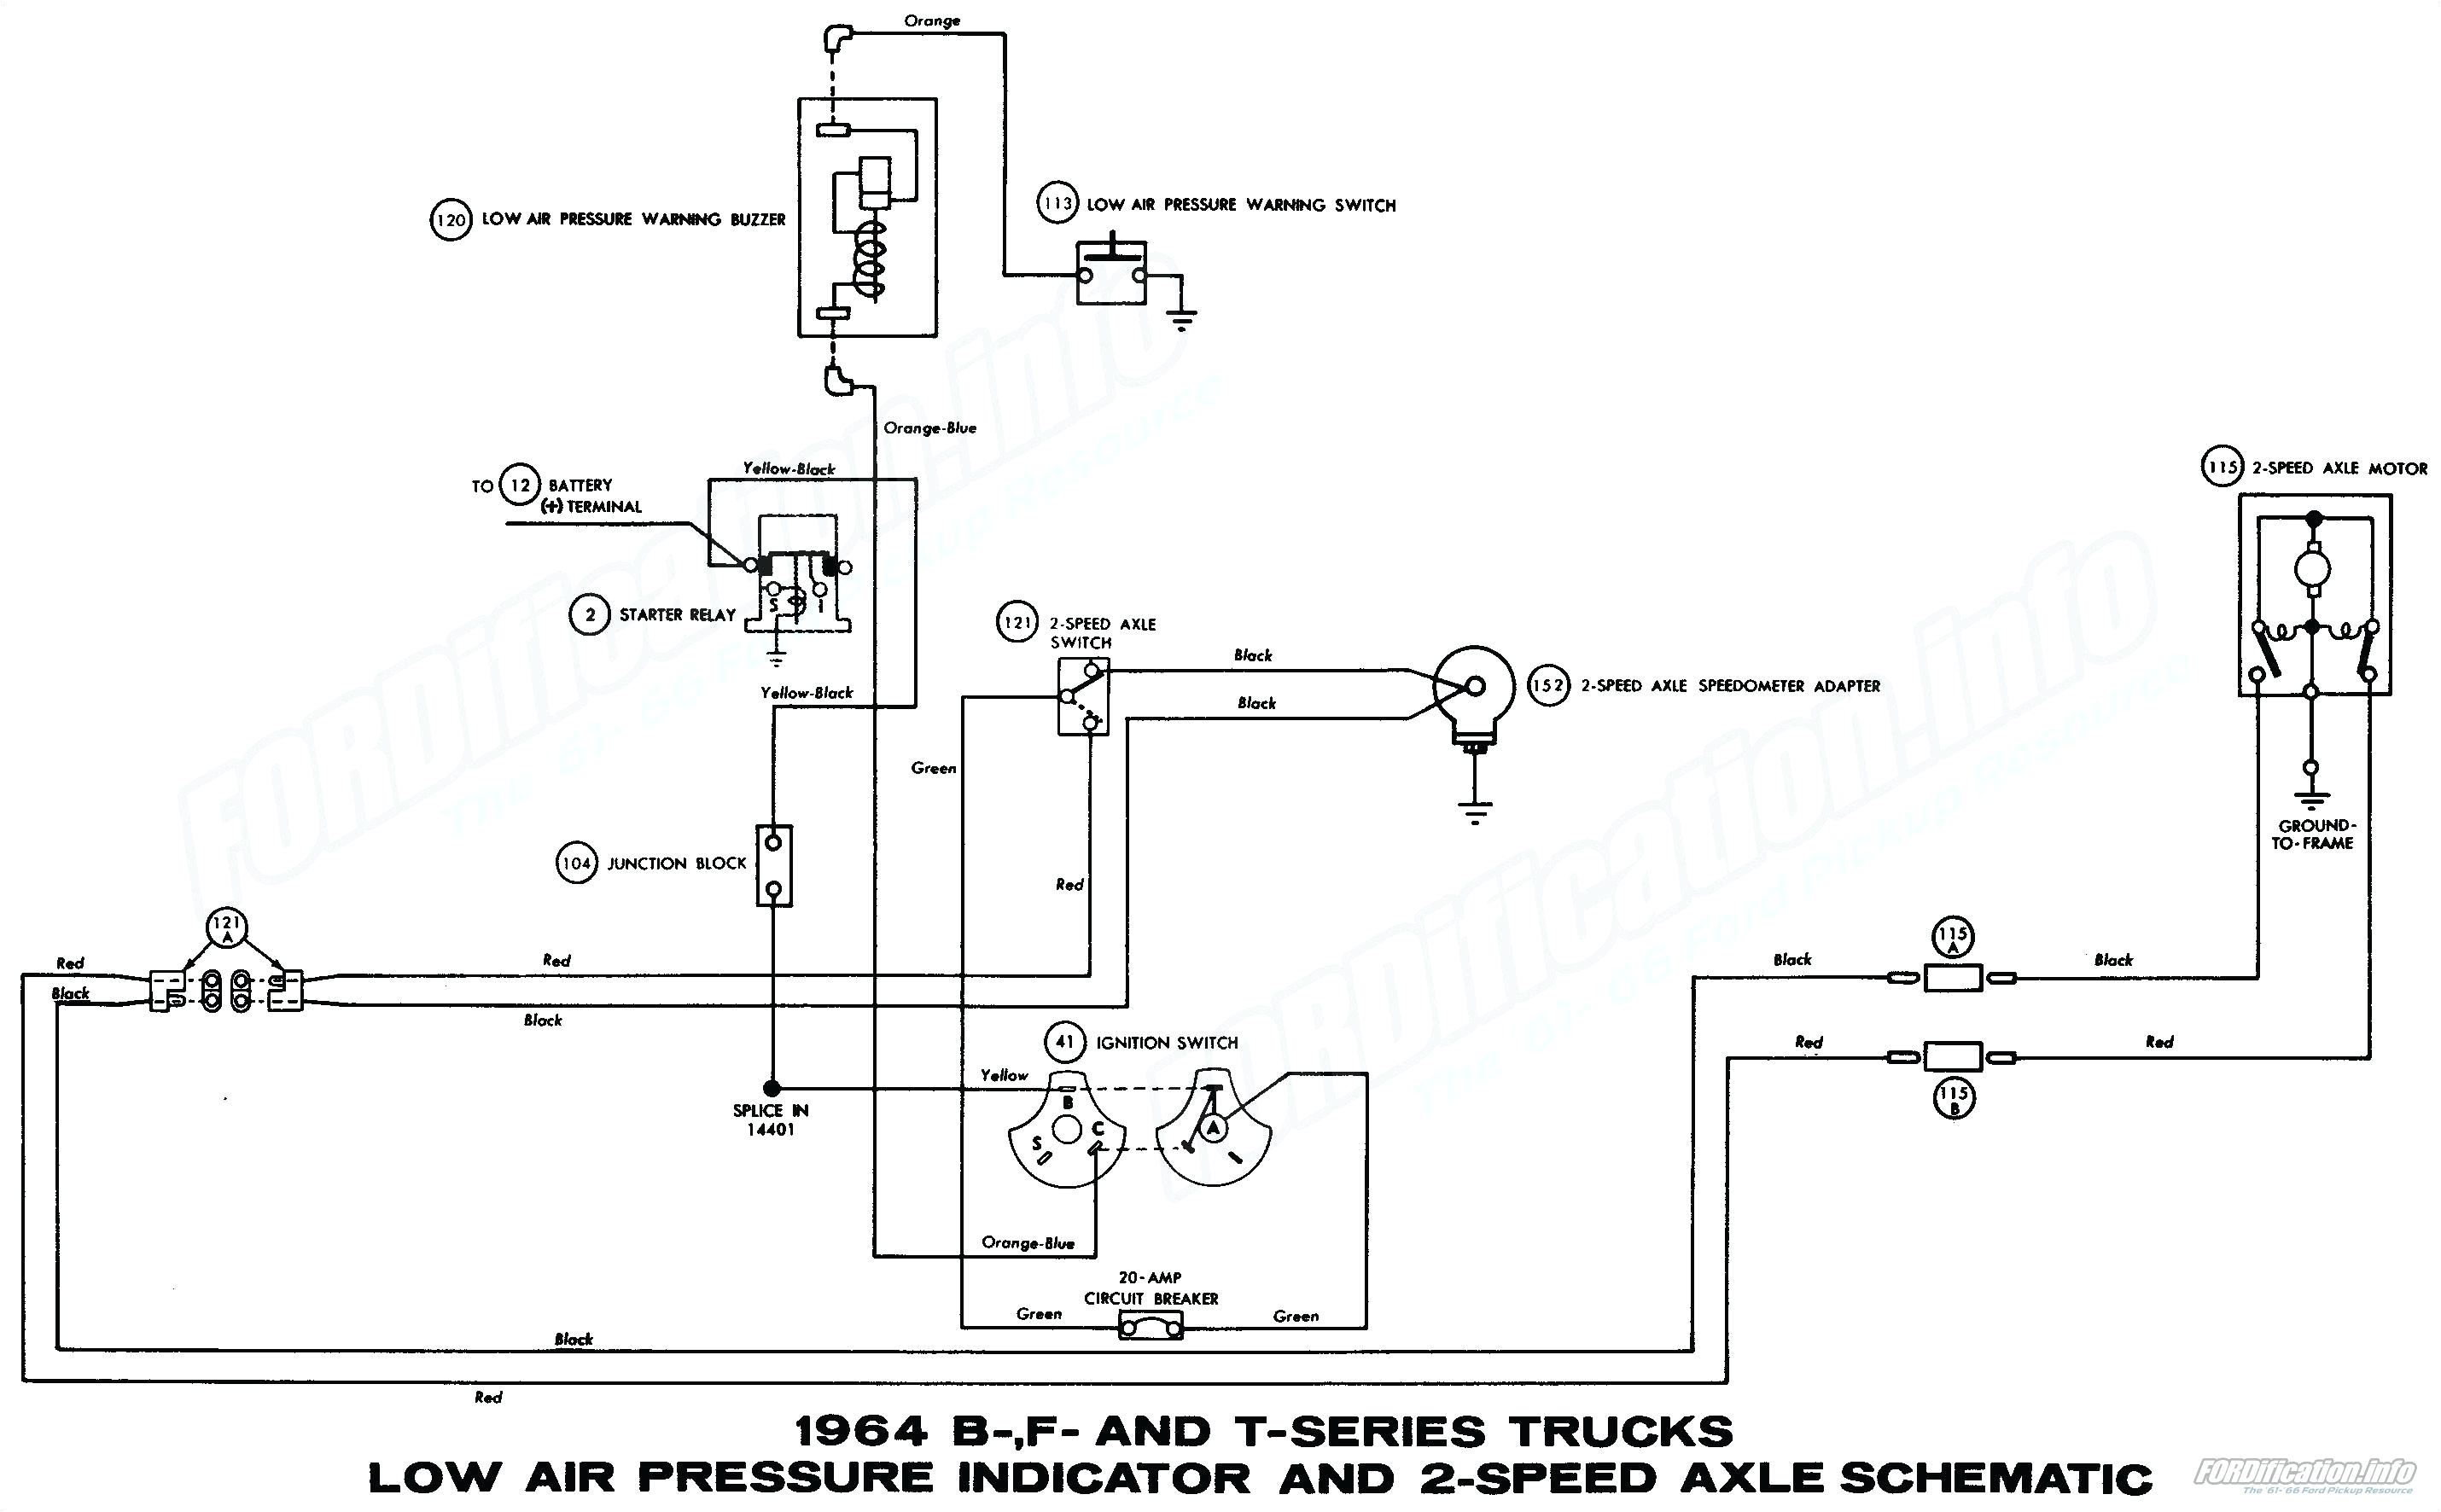 8n ford tractor wiring diagram volt bjzhjy or diagrams to conversion kit for 9n used parts on jpg